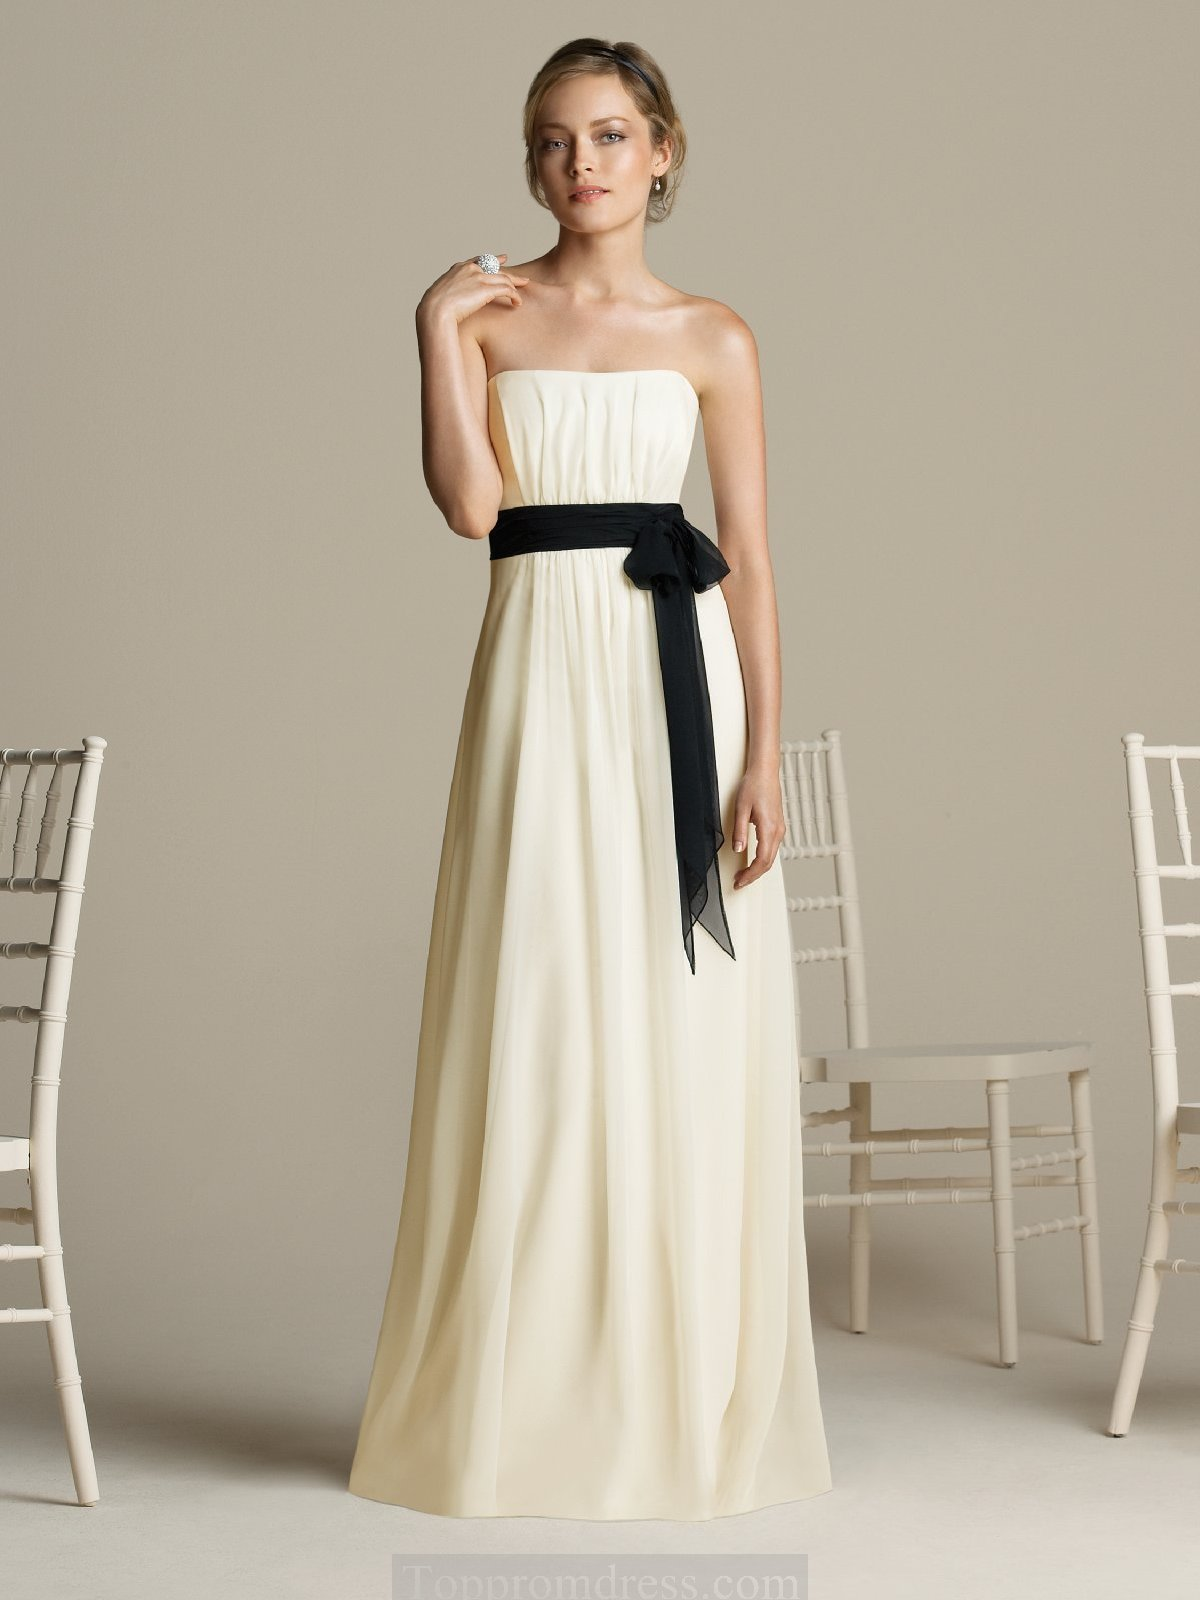 blog for dress shopping how to wear white prom dresses to avoid being too bridal. Black Bedroom Furniture Sets. Home Design Ideas